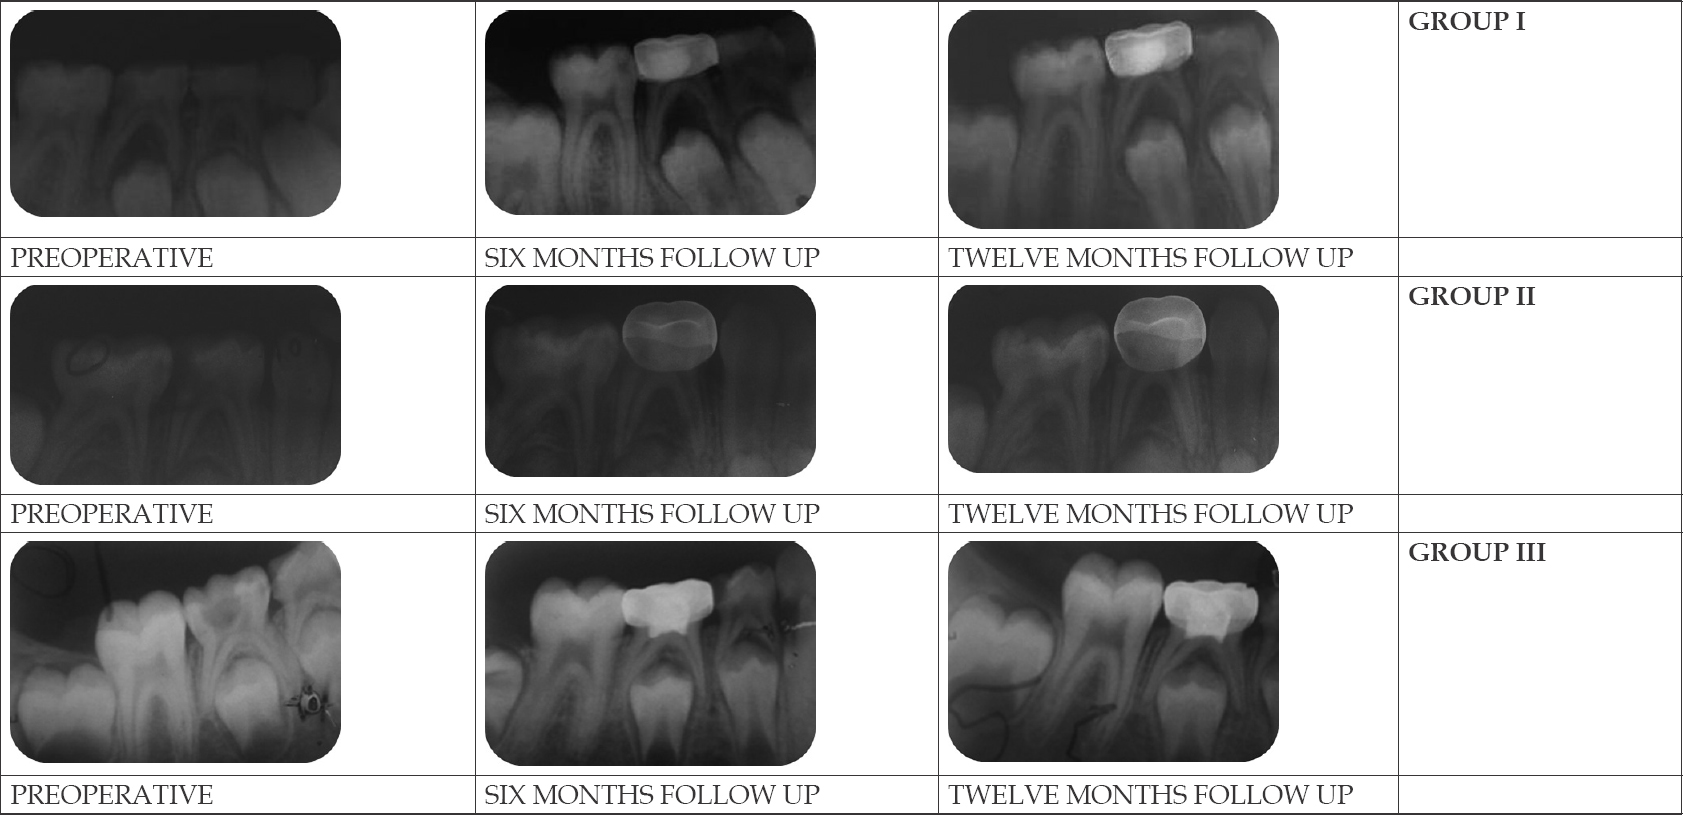 Figure 2: Radiographic success of all three groups preopratively and at six and twelve months follow up